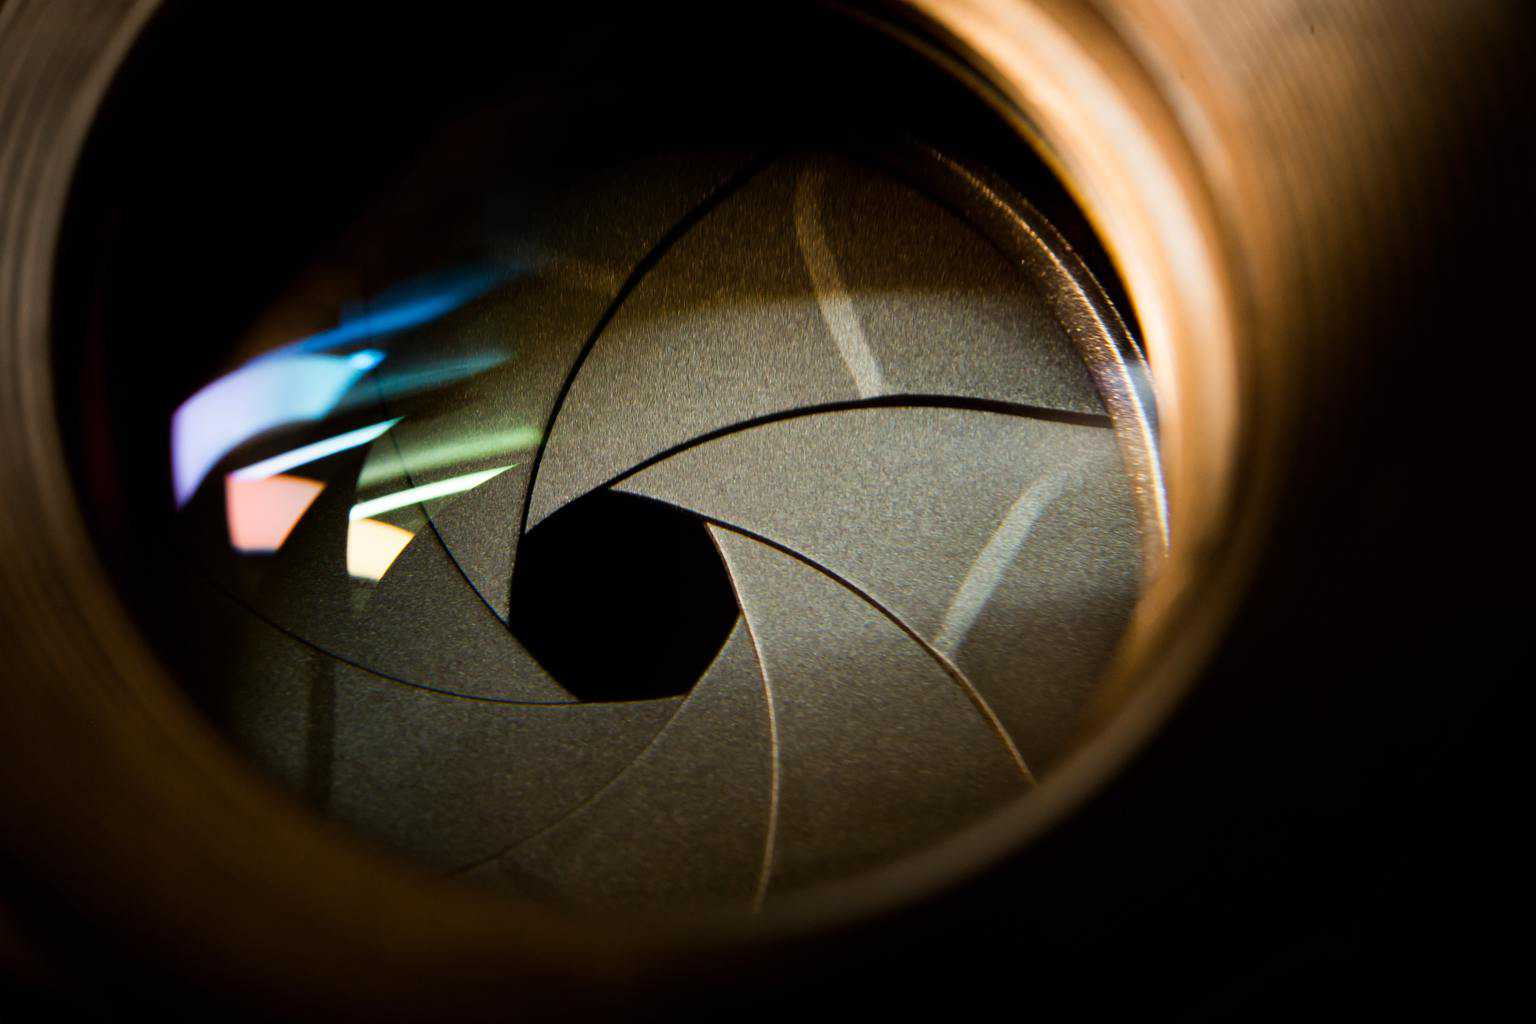 Aperture blades inside a lens with a reflection of light